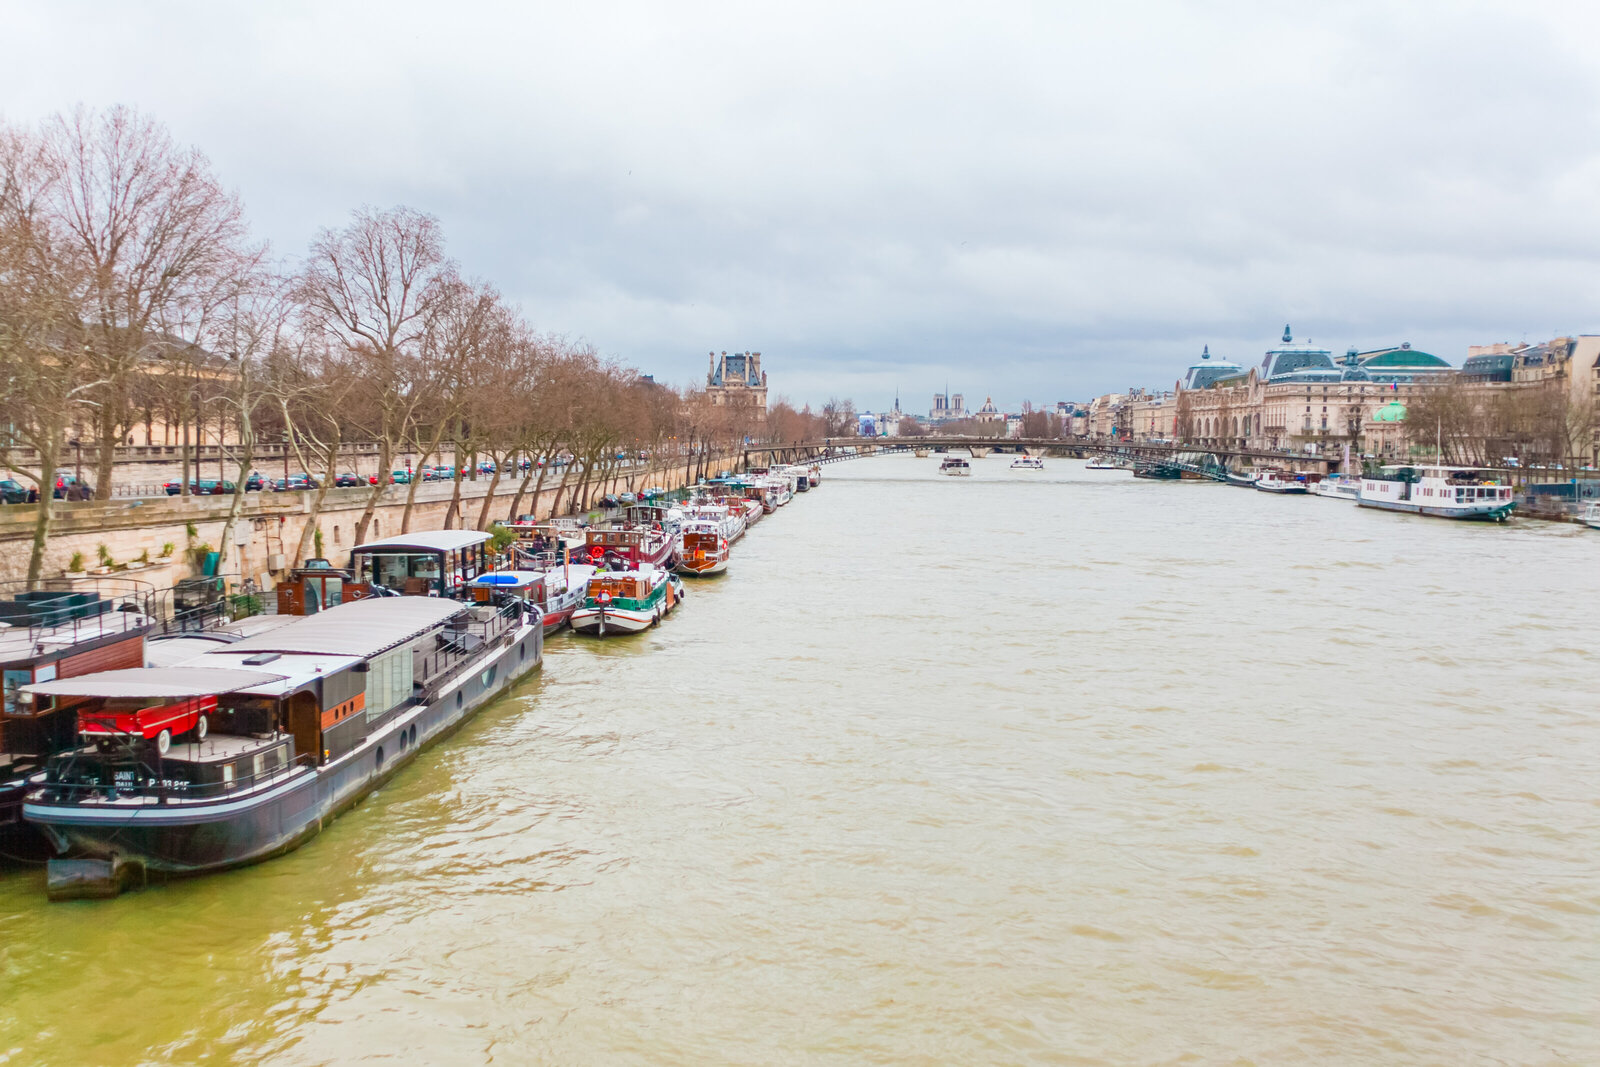 049-KBP-Seine-River-Paris-France